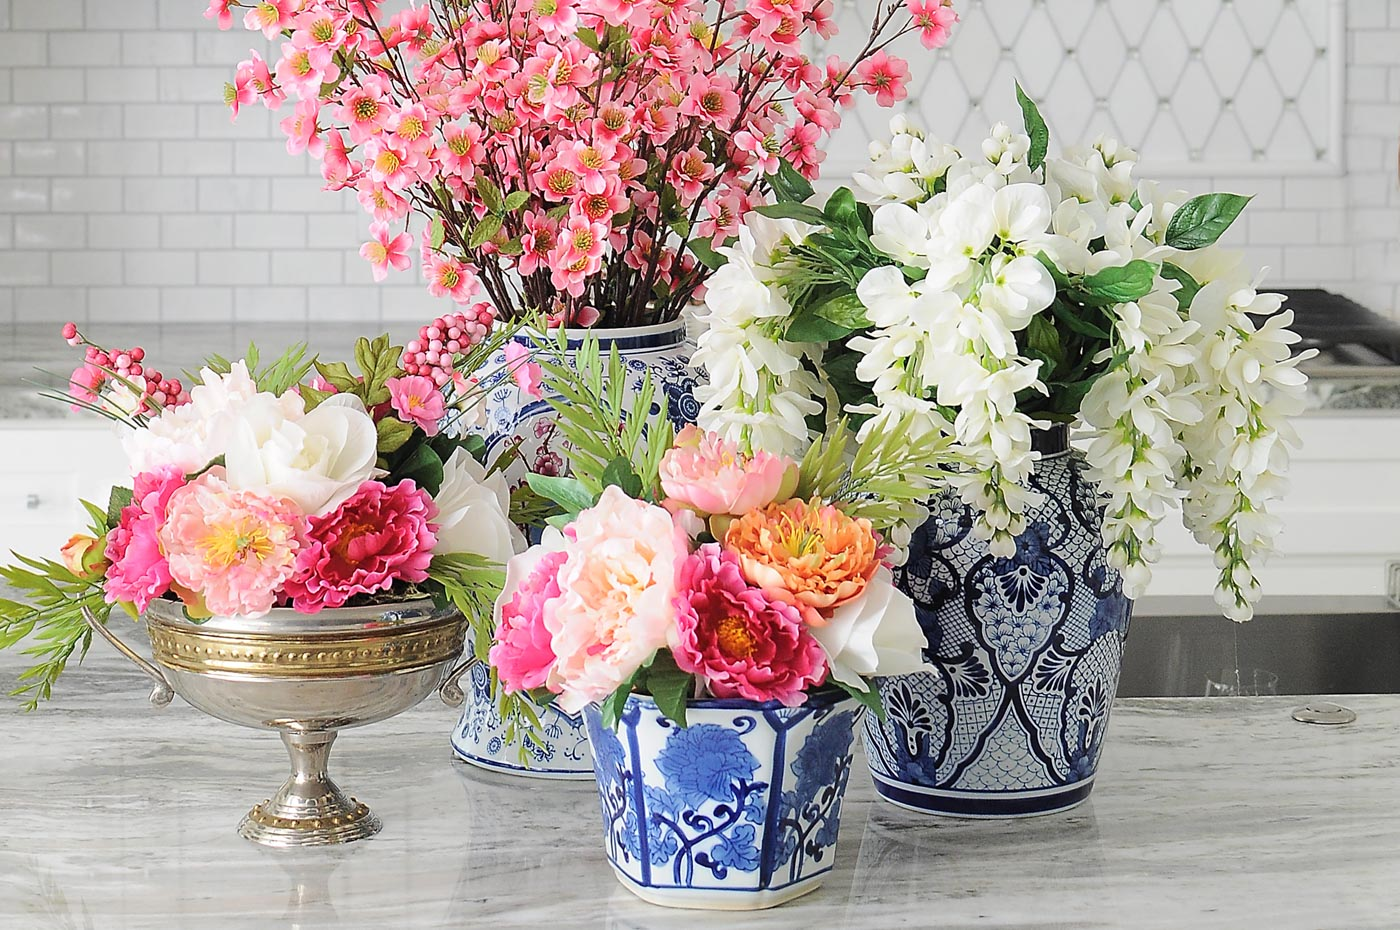 Definitely using this tutorial for how to make faux floral arrangements! These are gorgeous.